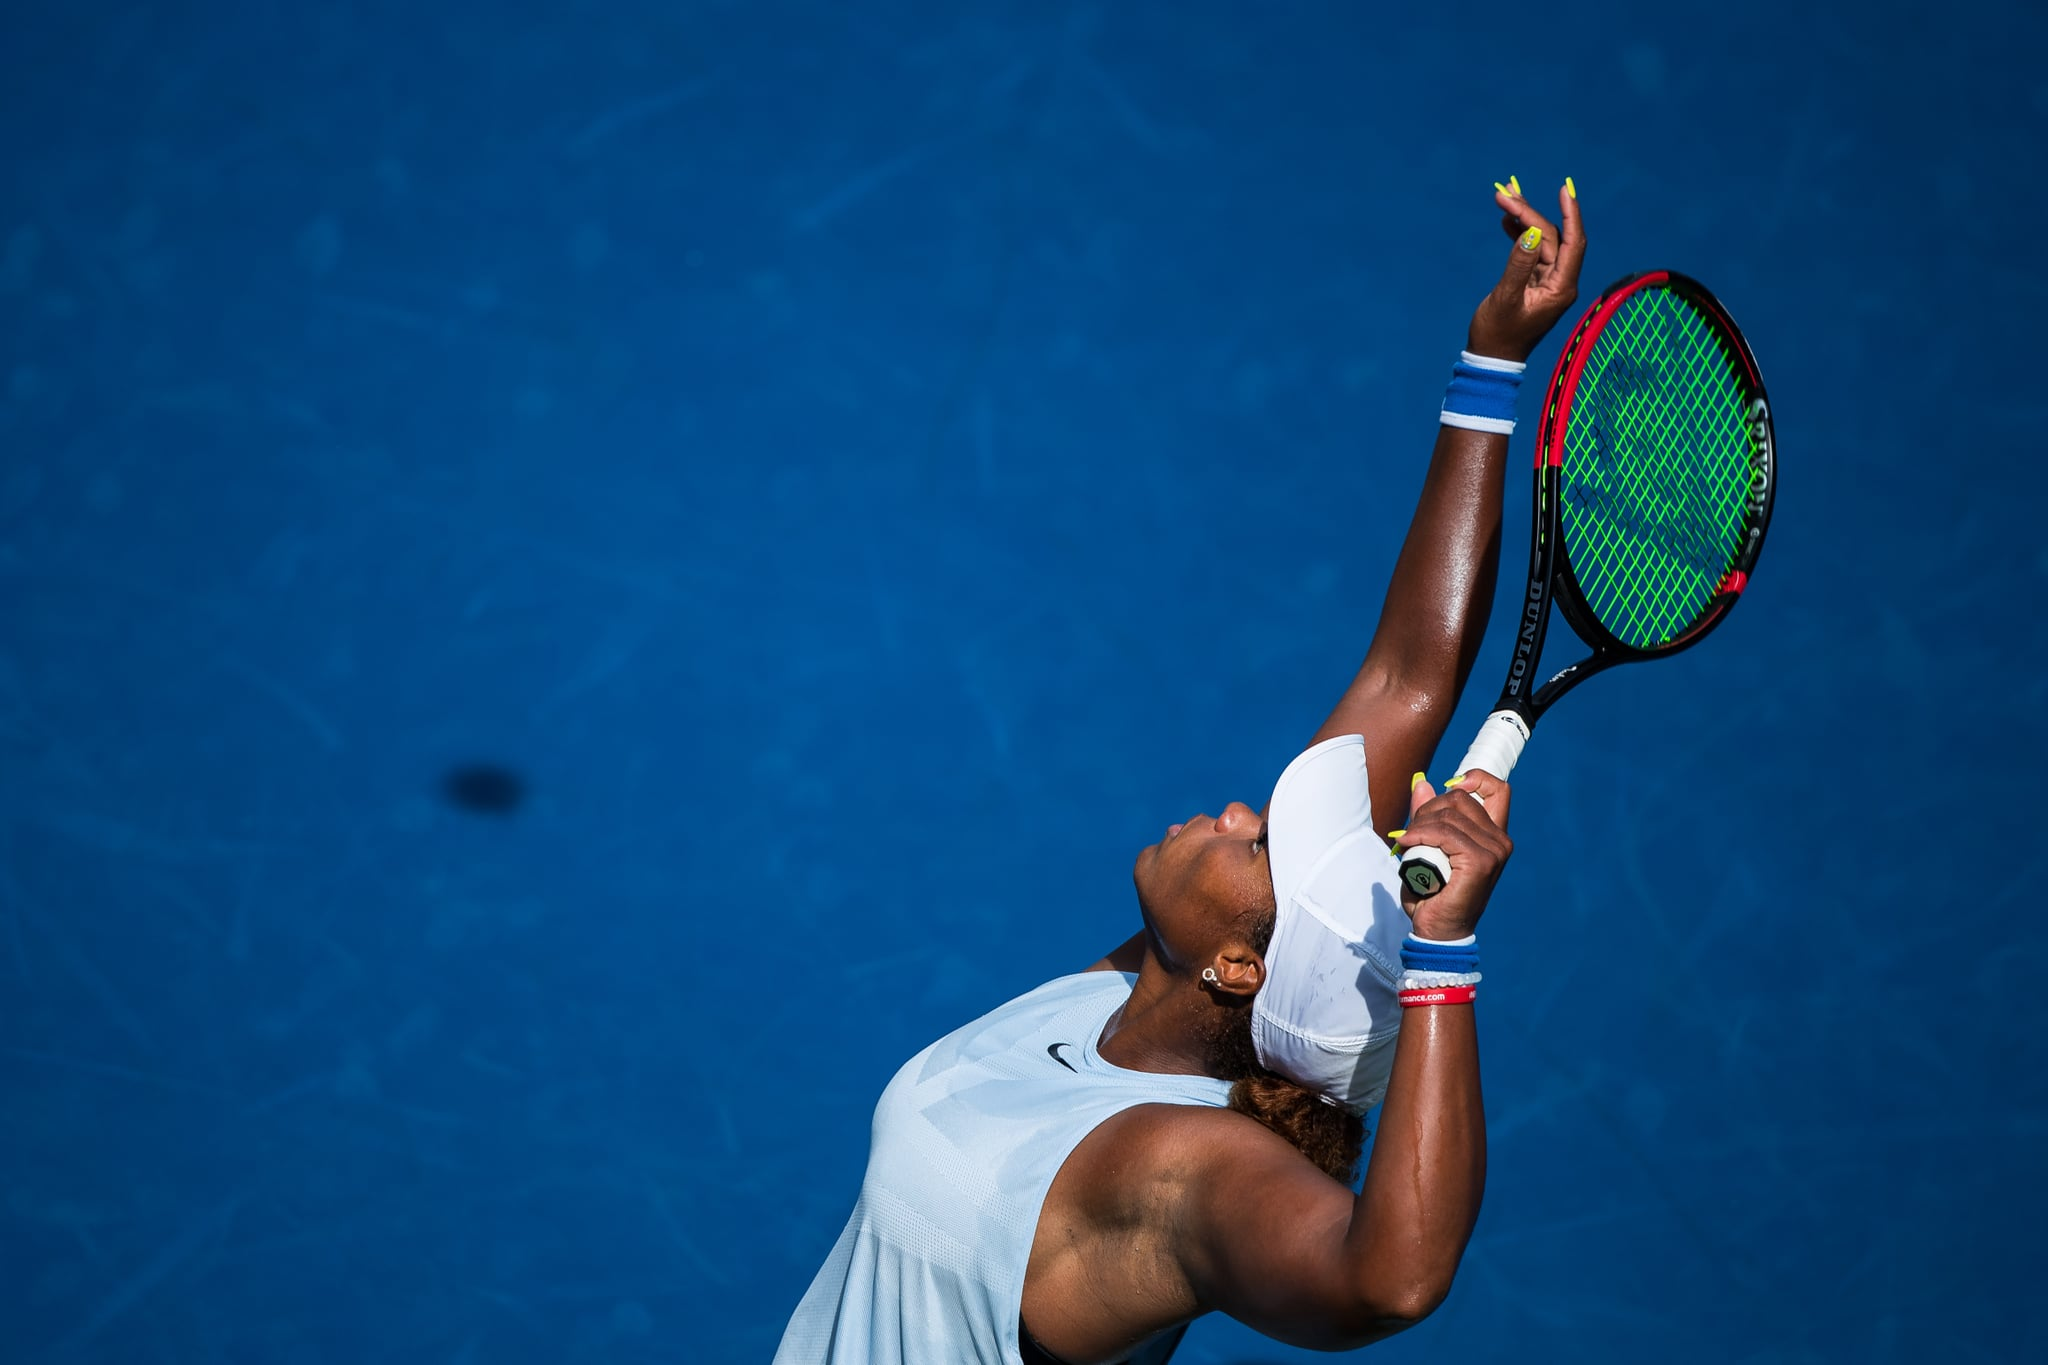 NEW YORK, NEW YORK - AUGUST 31: Taylor Townsend of the United States serves a shot during her 3rd round day 6 Women's Singles 2019 US Open match against Sorana Cirstea of Romania at the USTA Billie Jean King National Tennis Centre on August 31, 2019 in Queens borough of New York City. (Photo by Chaz Niell/Getty Images)